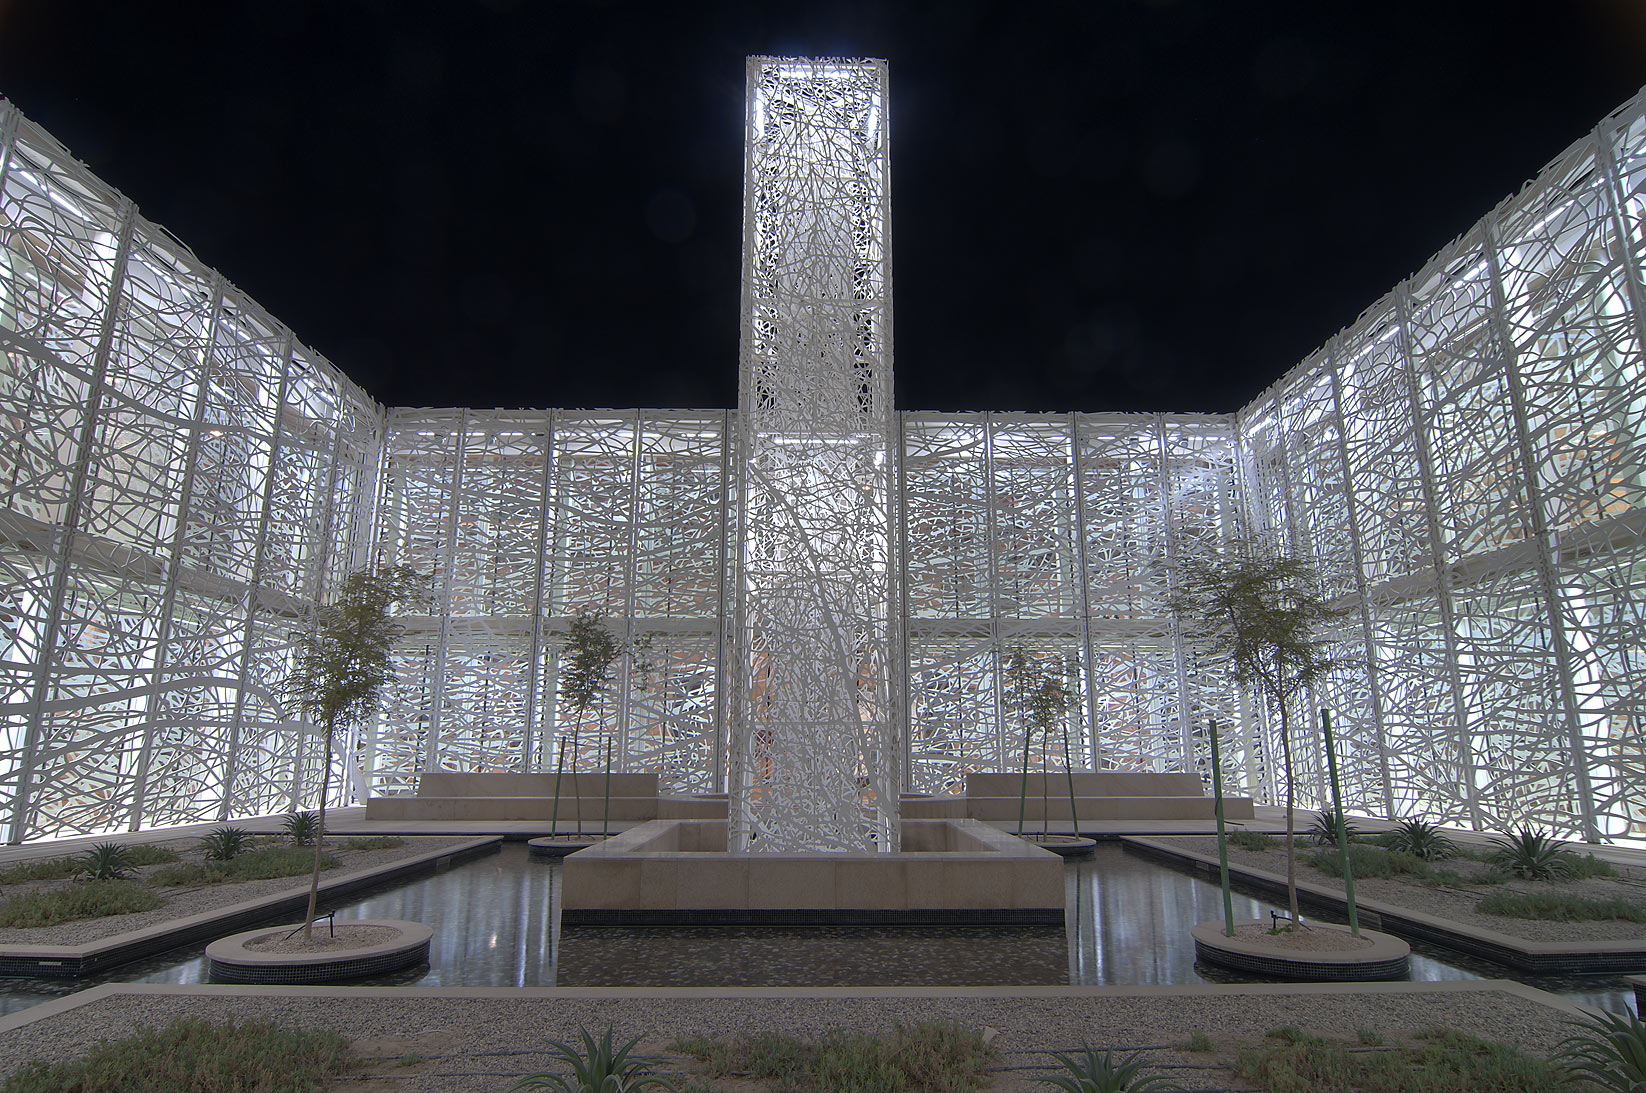 Illuminated Sculpture Garden by Jan Hendrix in a...in Education City campus. Doha, Qatar